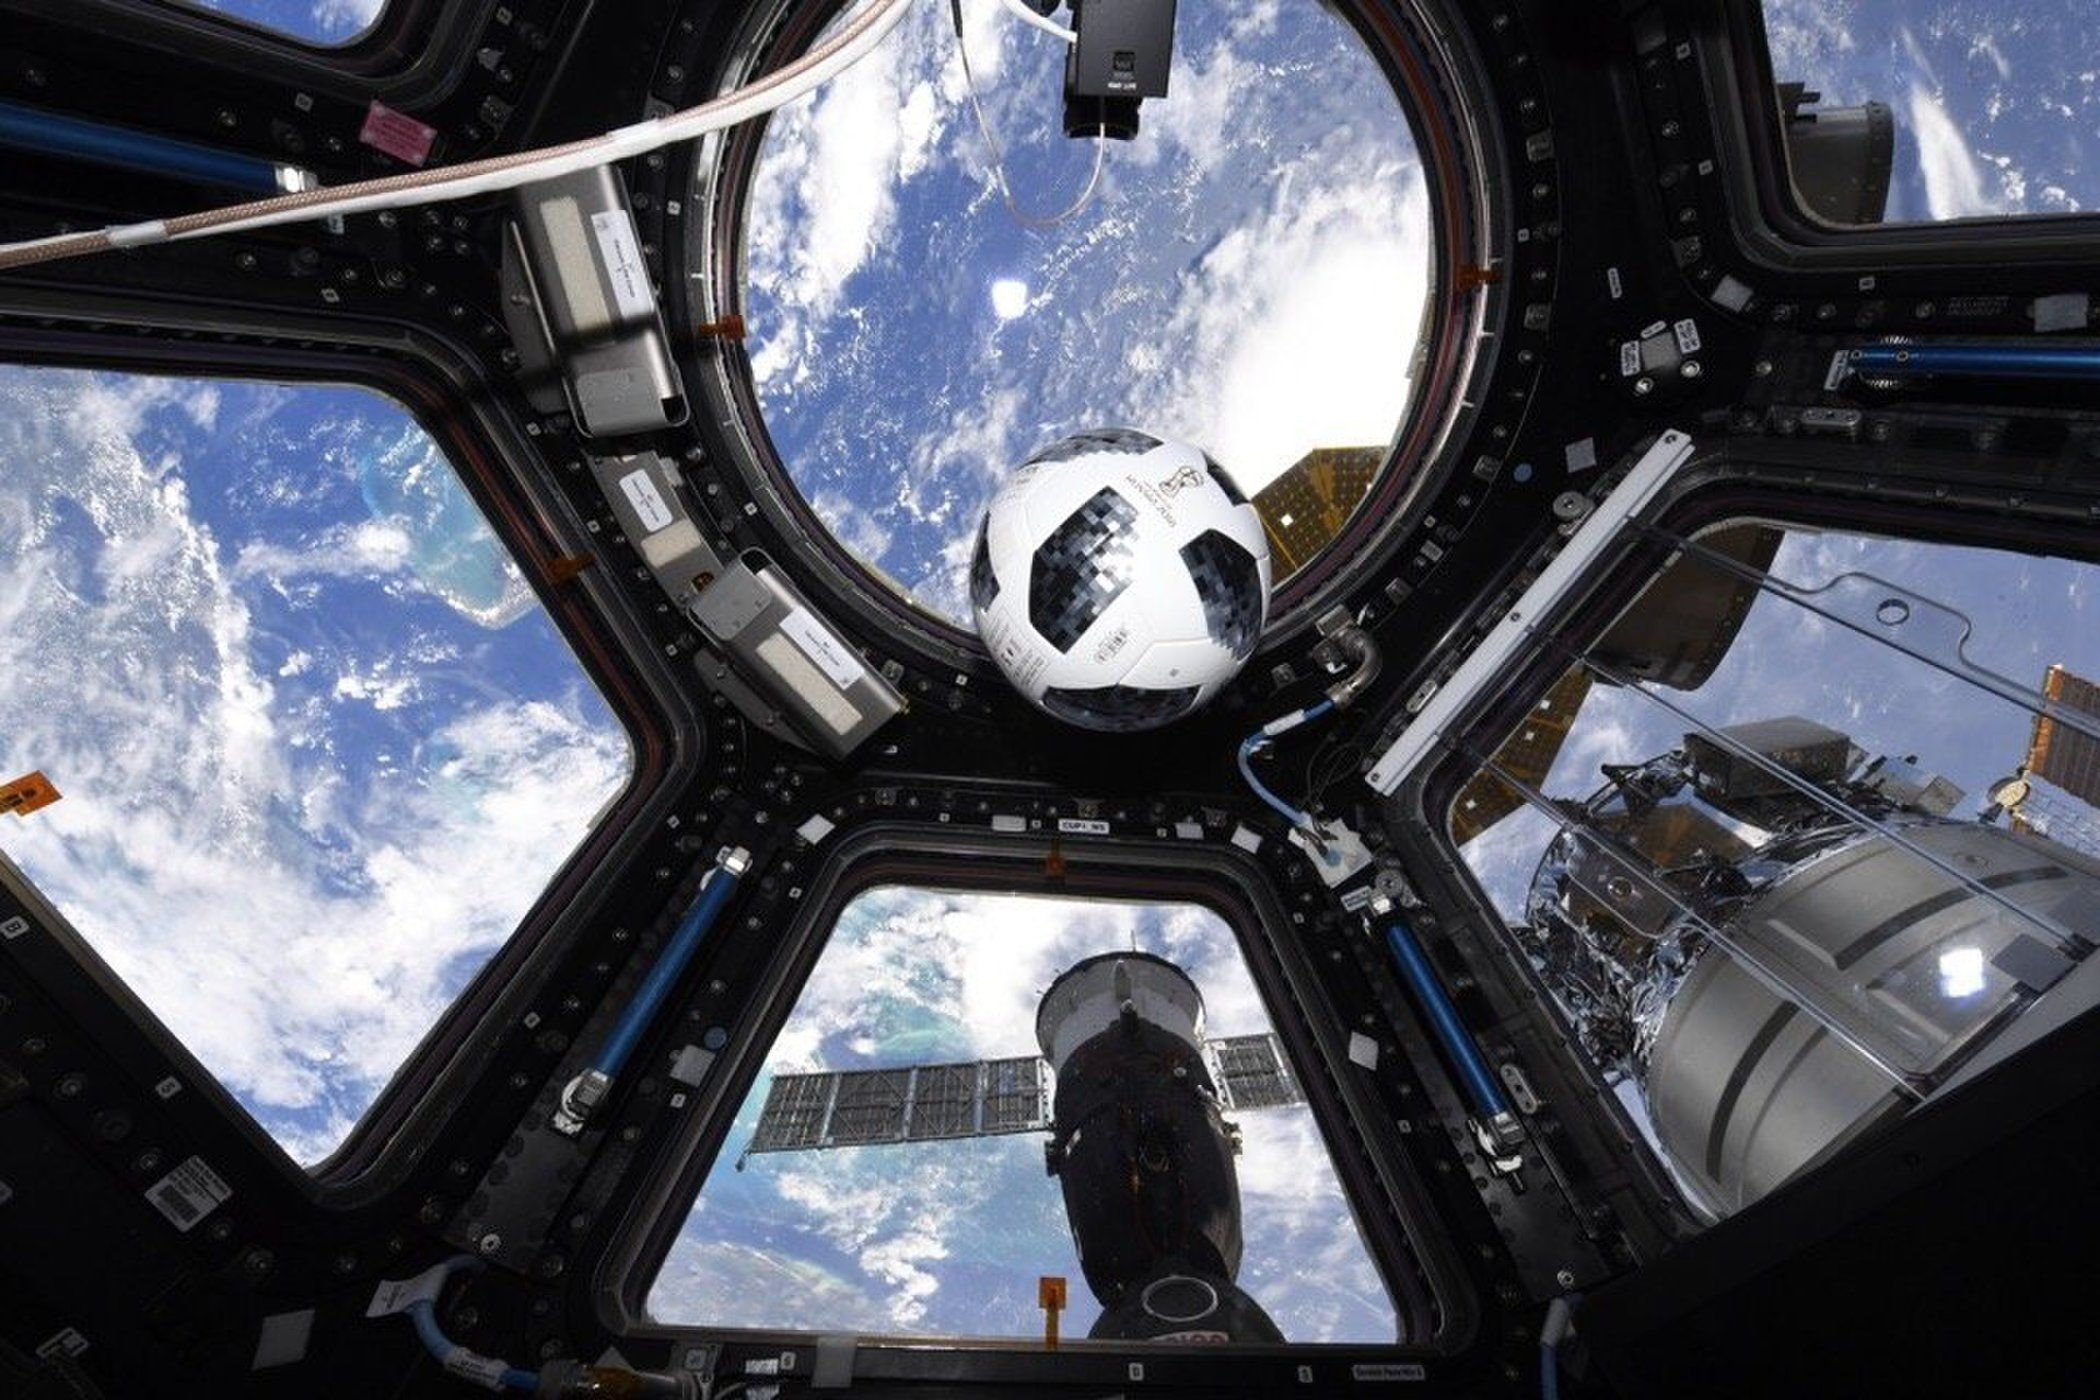 The Most Amazing Space Photos This Week! Space photos